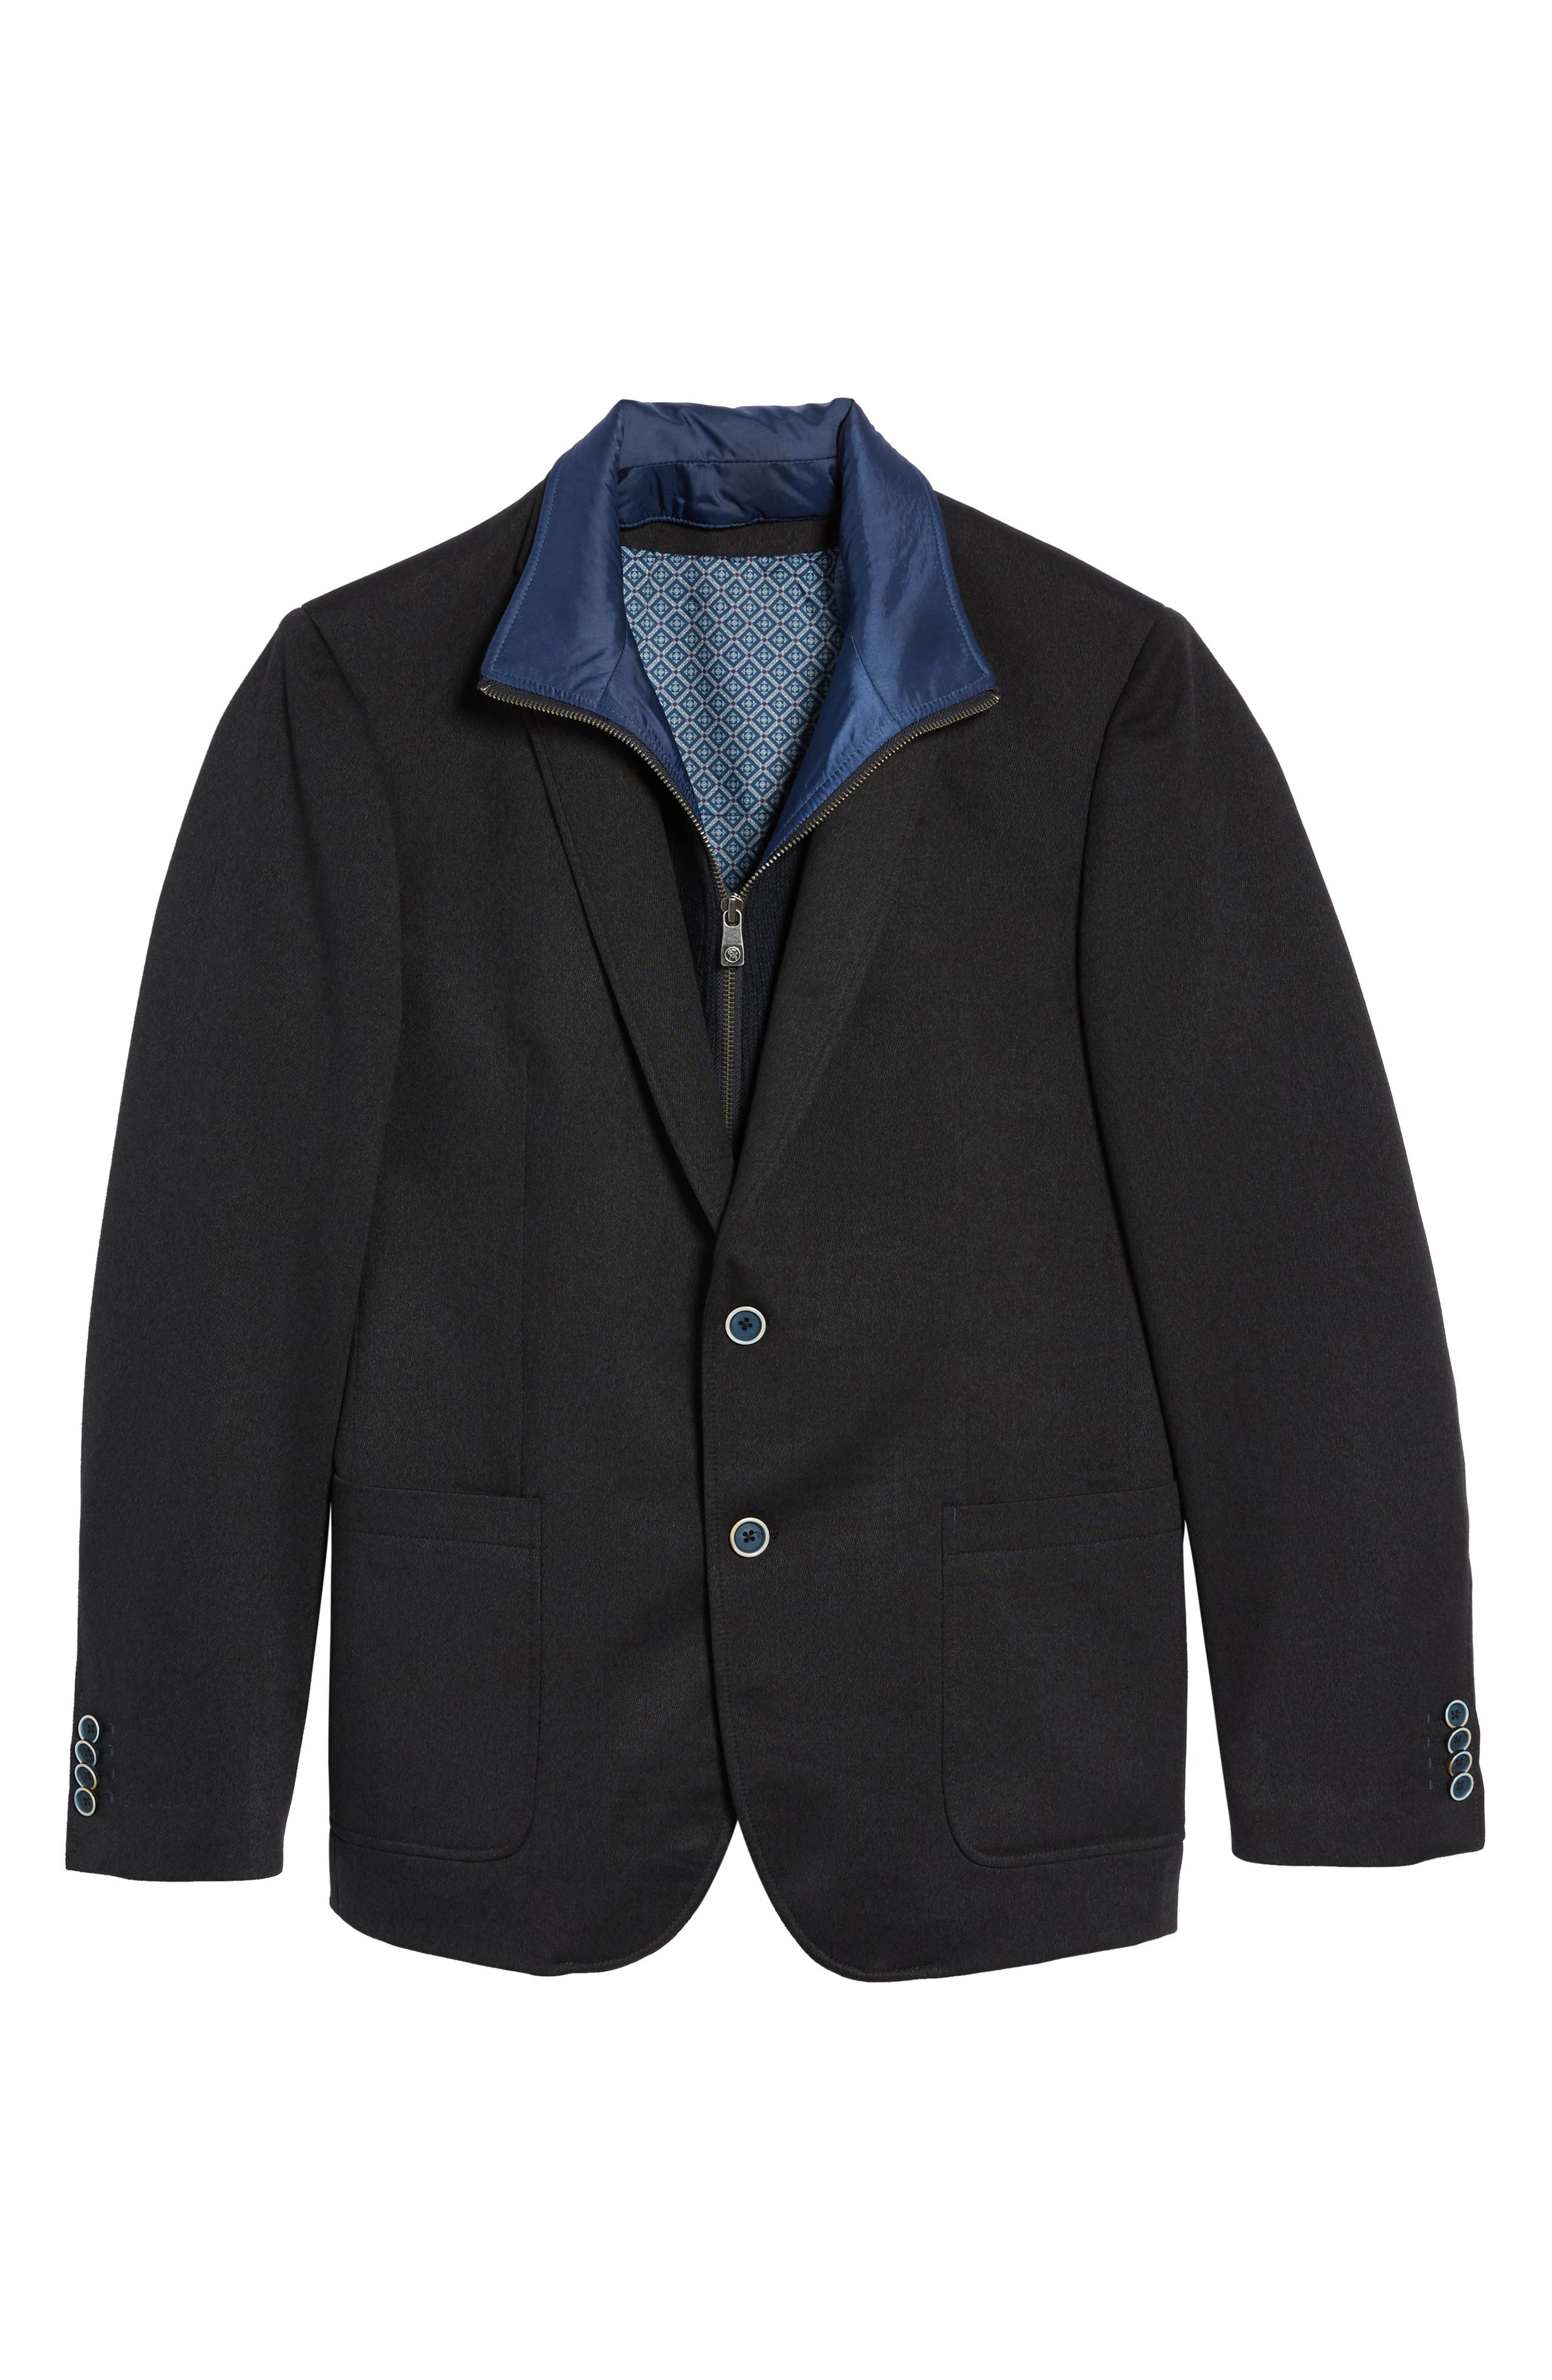 Broderick Technical Outerwear Jacket with Detachable Knit Bib,                             Alternate thumbnail 6, color,                             Navy